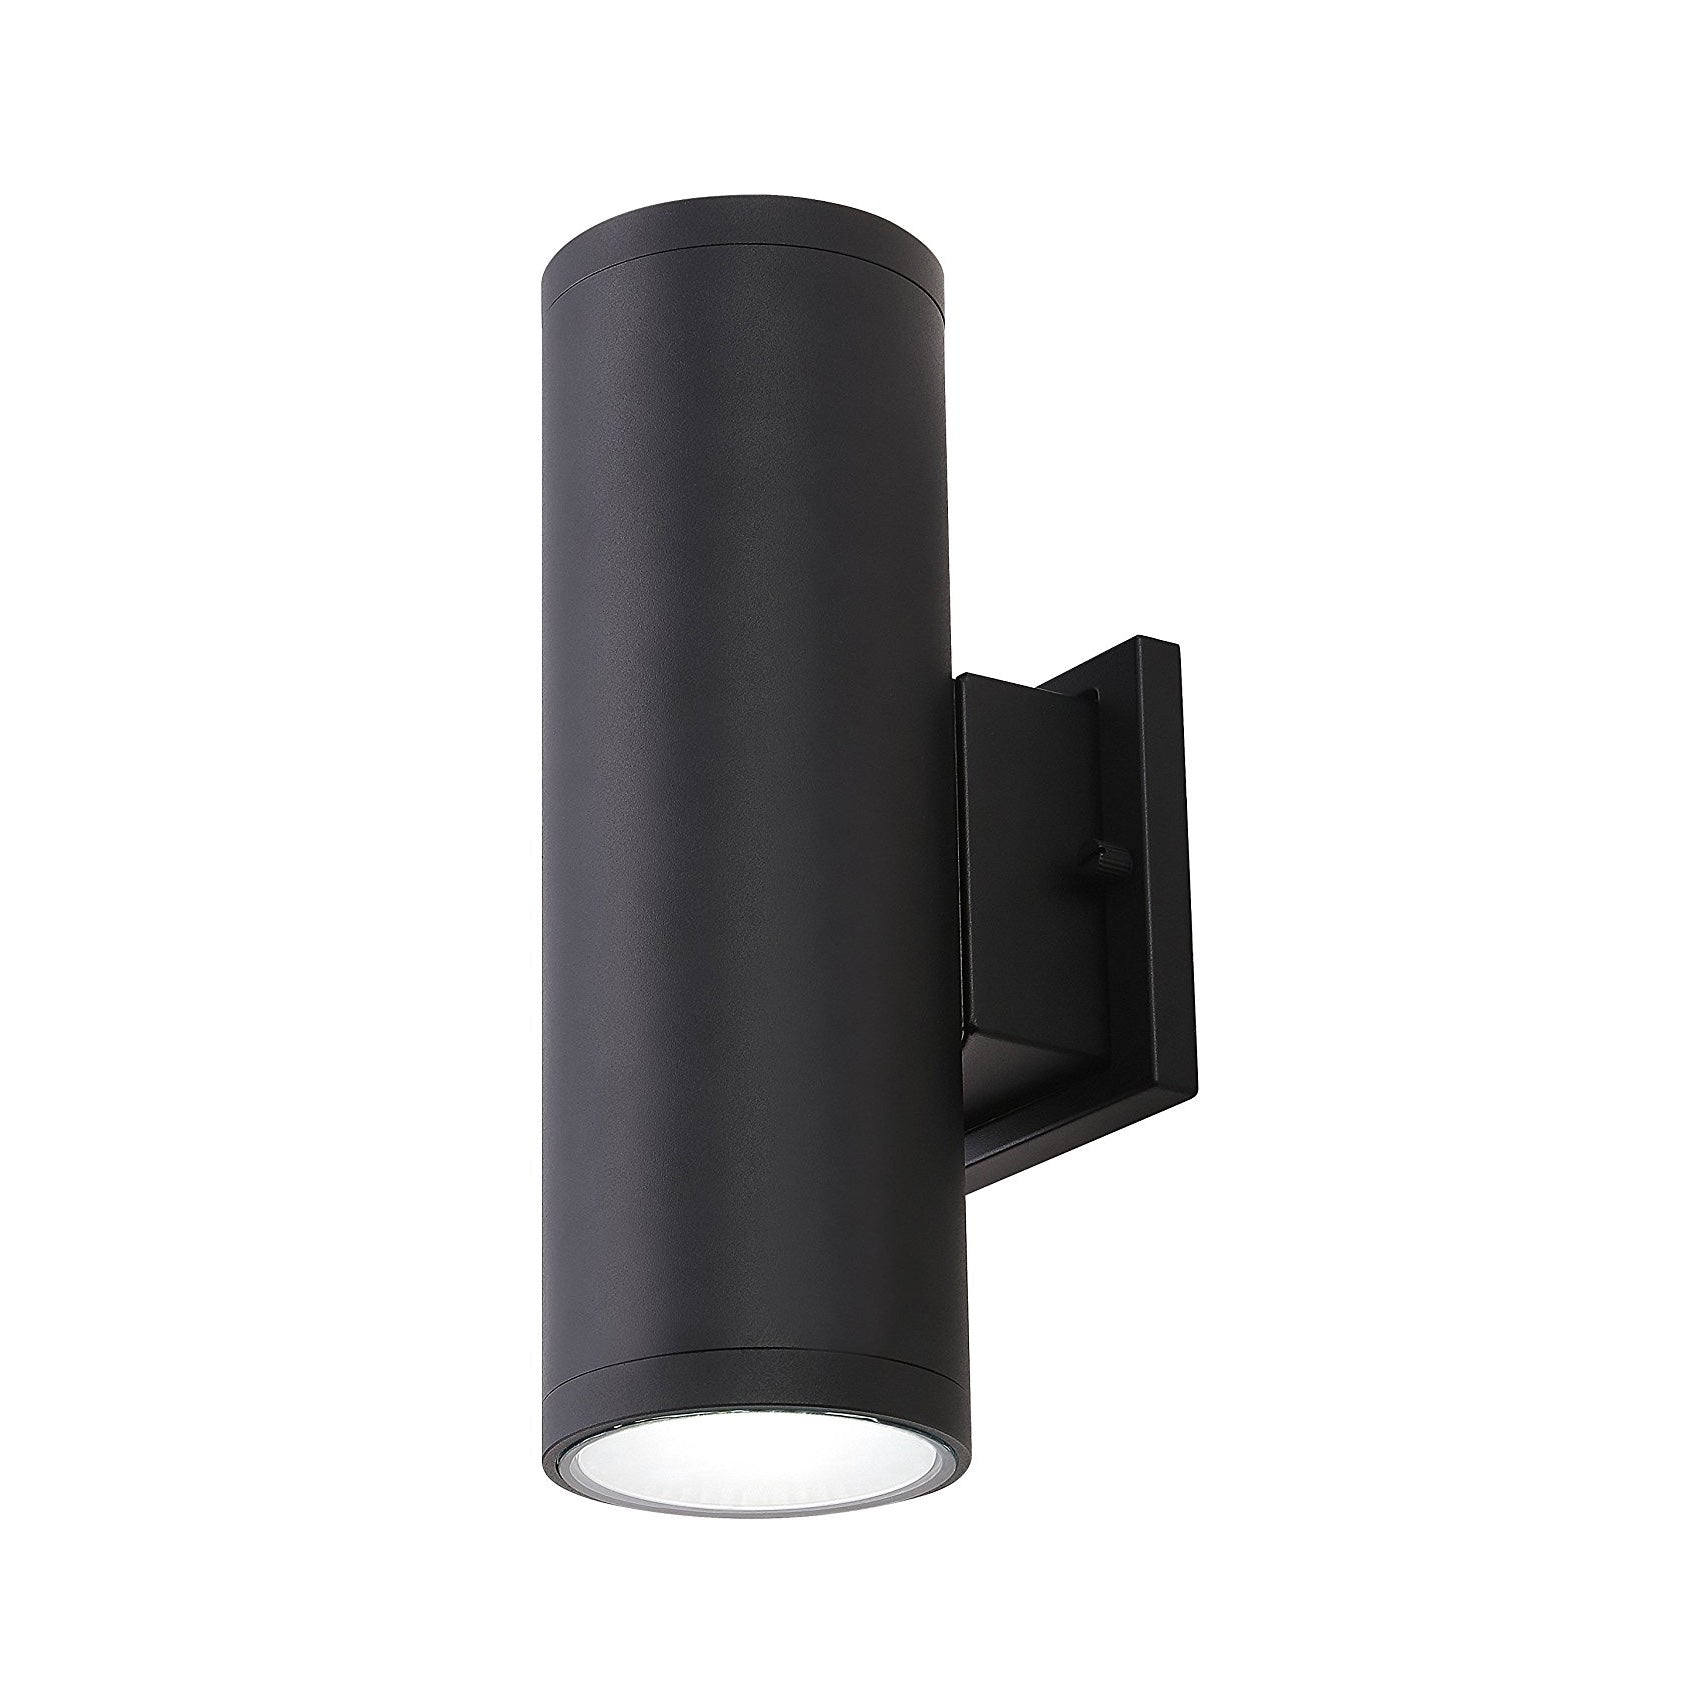 Cloudybay 4-inch 20W LED Outdoor Wall Light Black-5000K__title